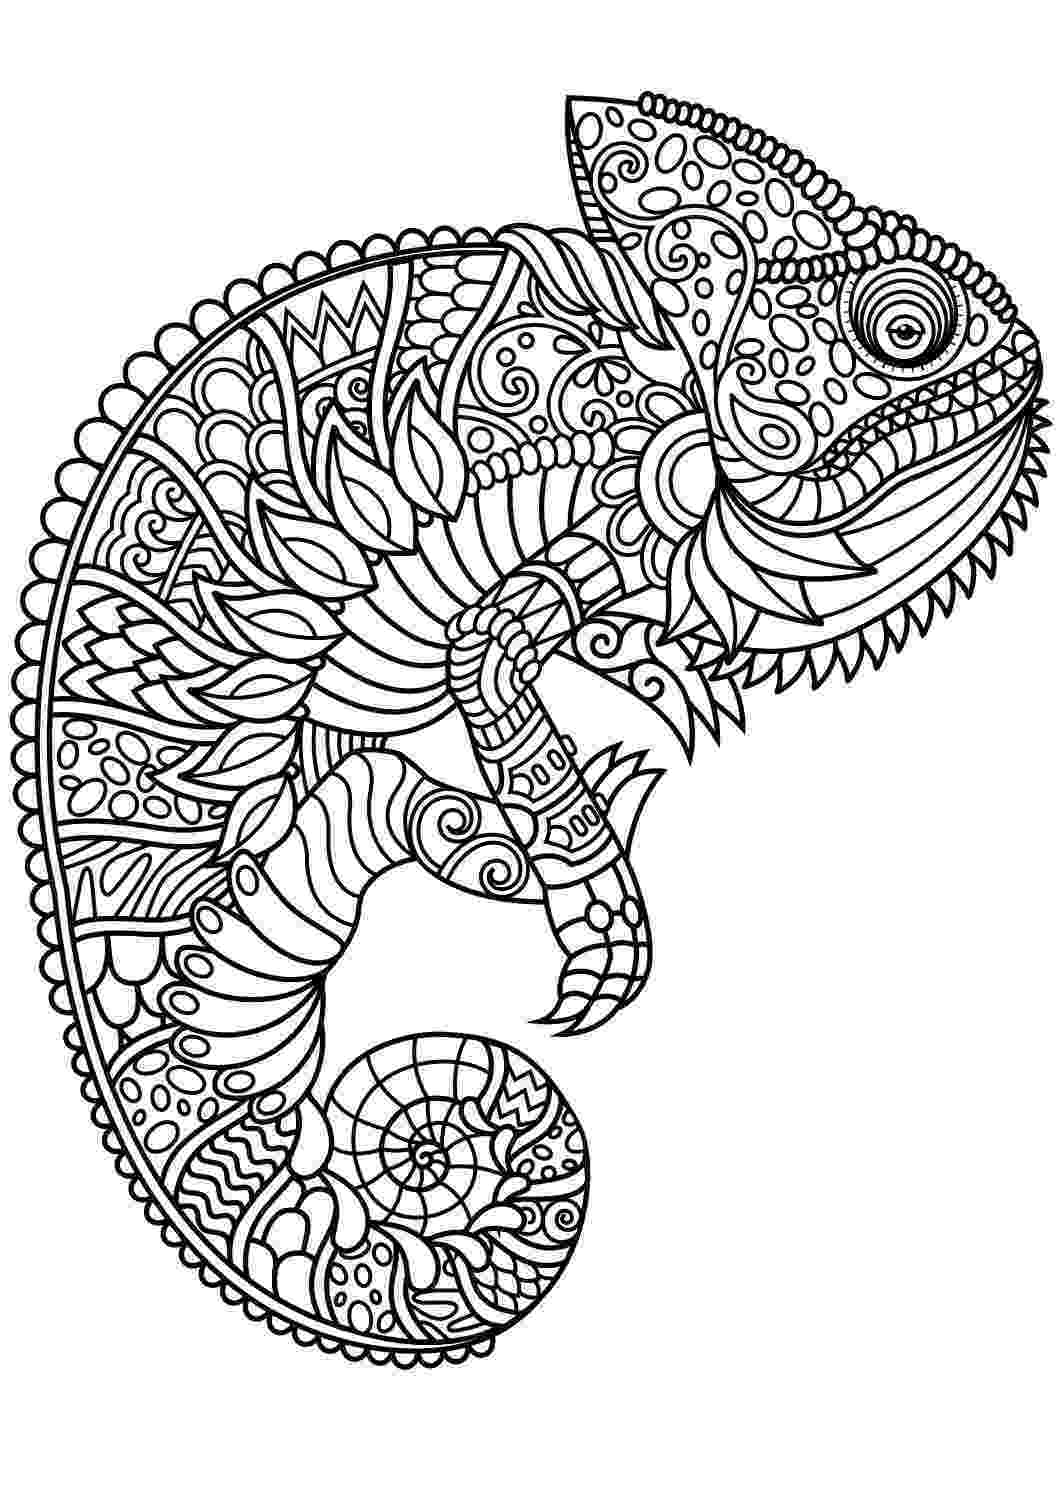 adult coloring pages animals animal coloring pages pdf bird coloring pages horse adult pages coloring animals